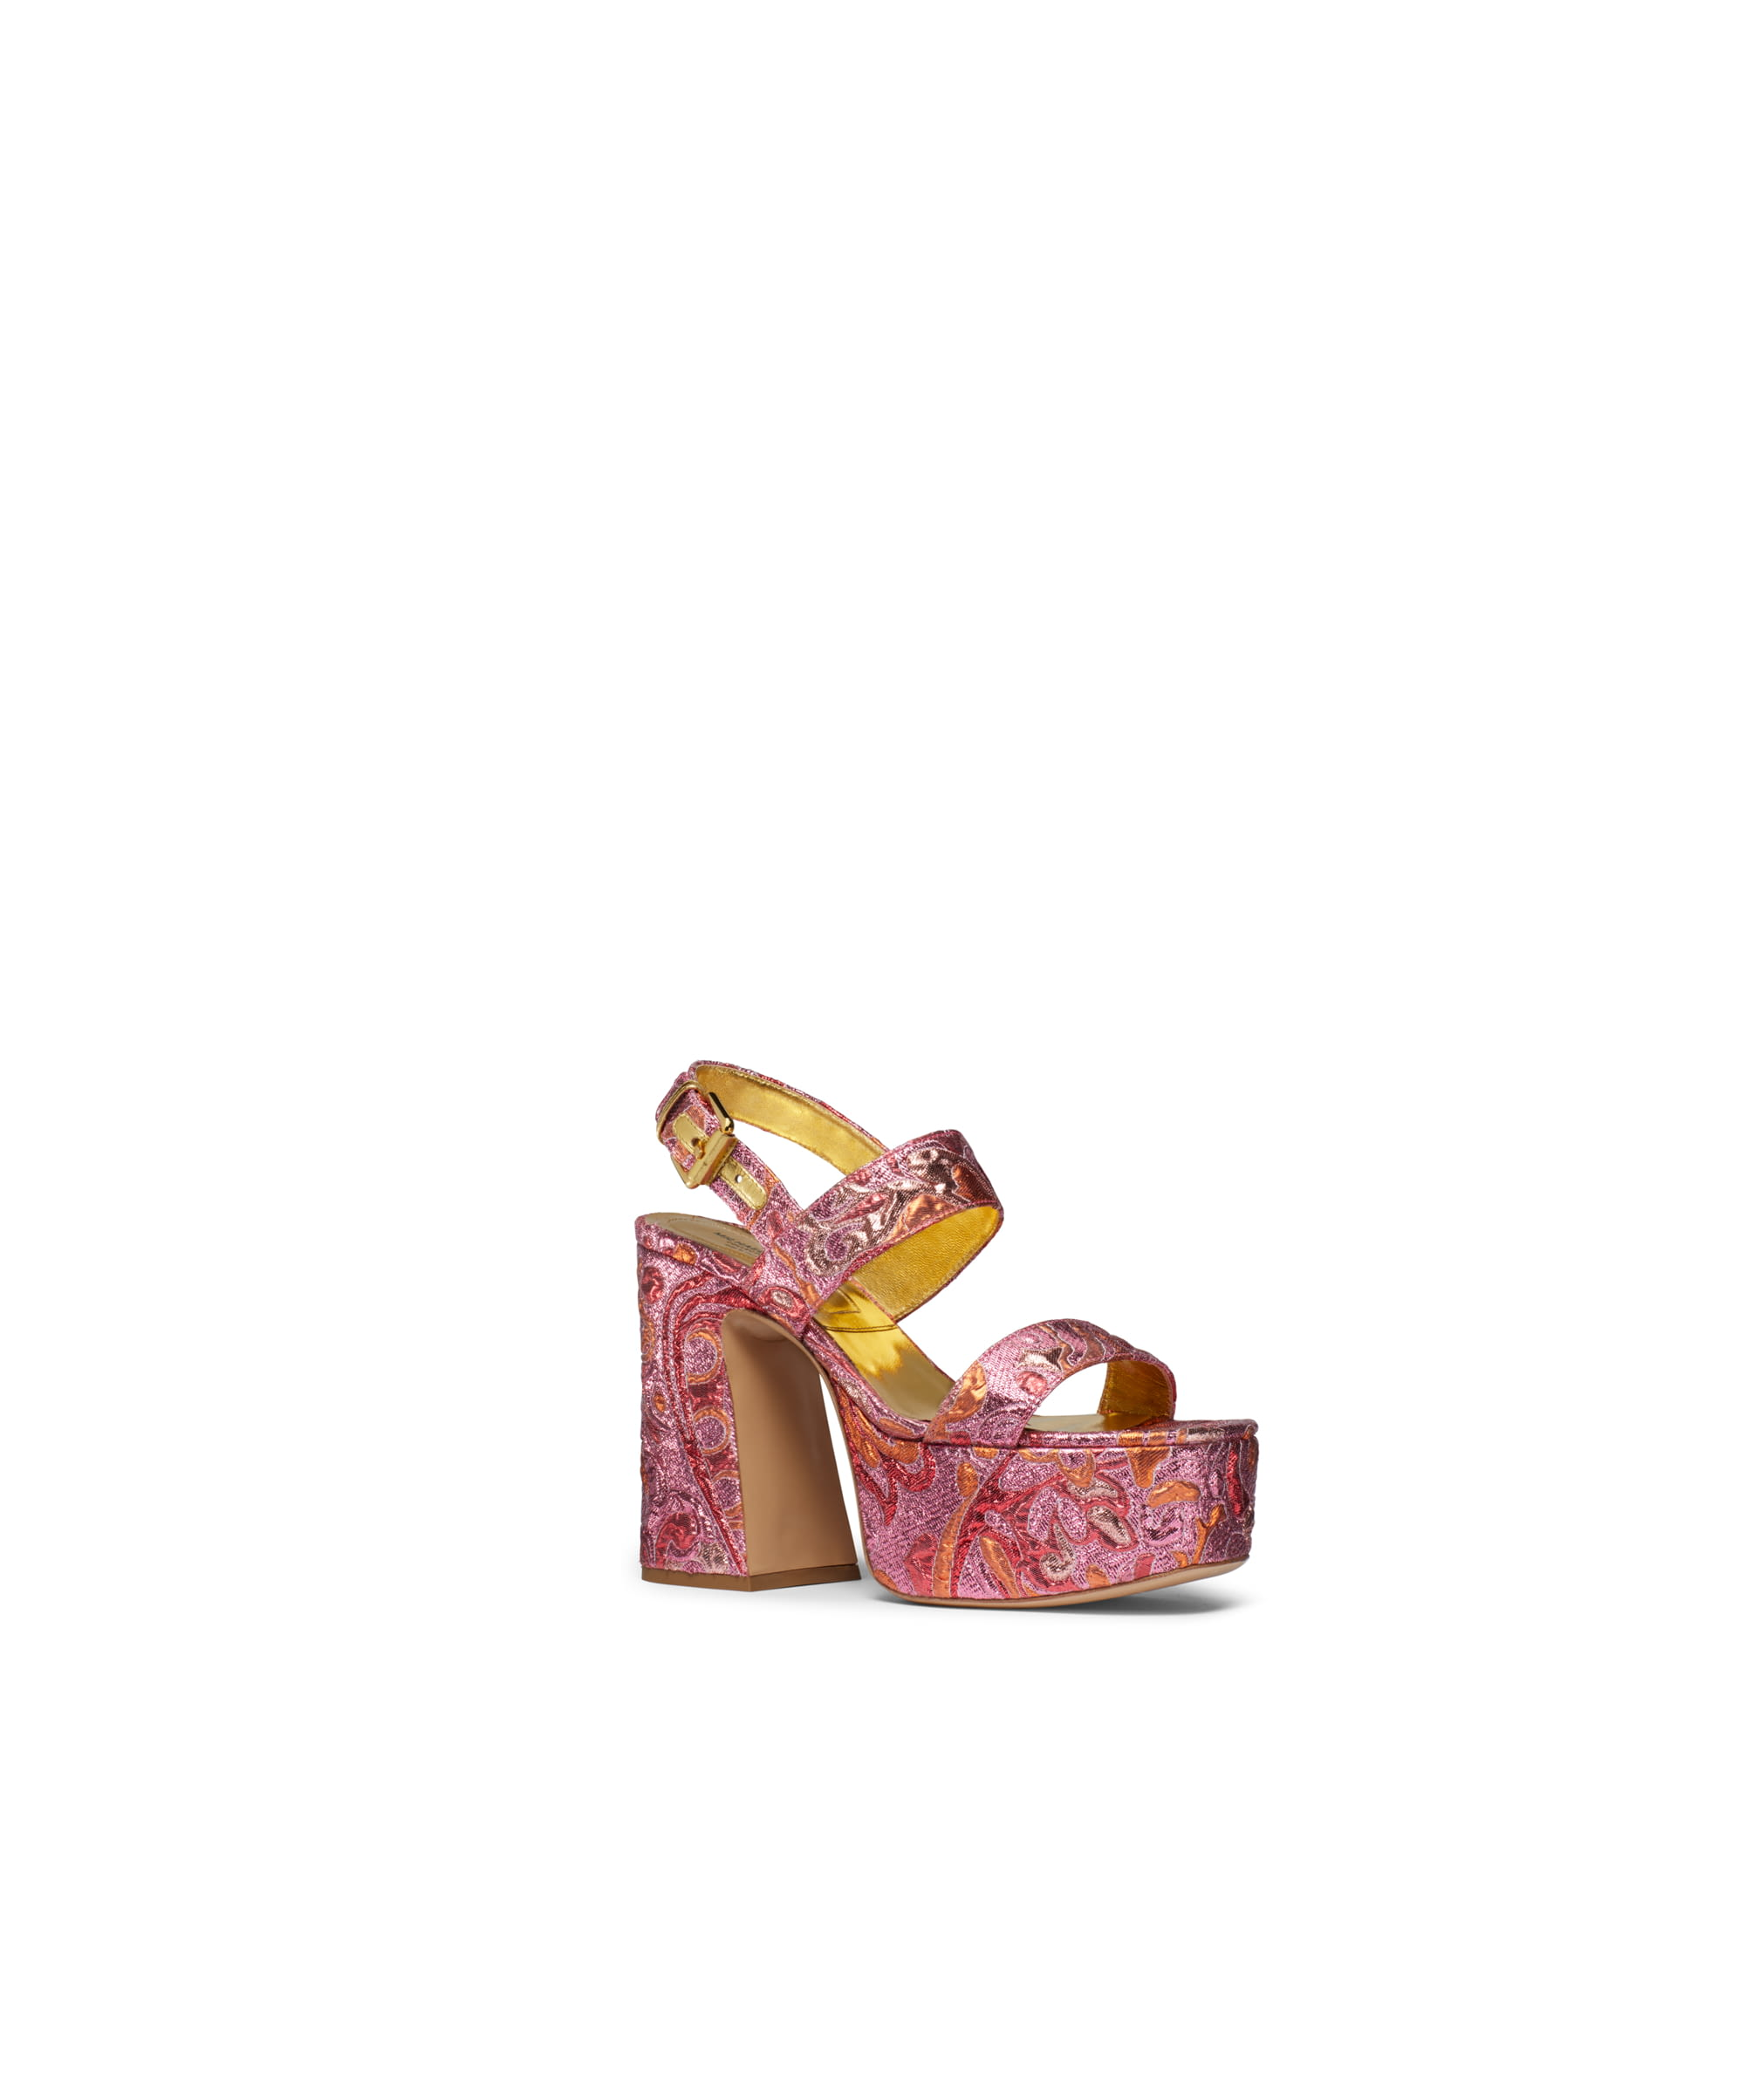 PINK EMBROIDERED FLOWER DESIGN WRAP ROUND LACE UPS STRAPPY SANDALS HIGH HEELS